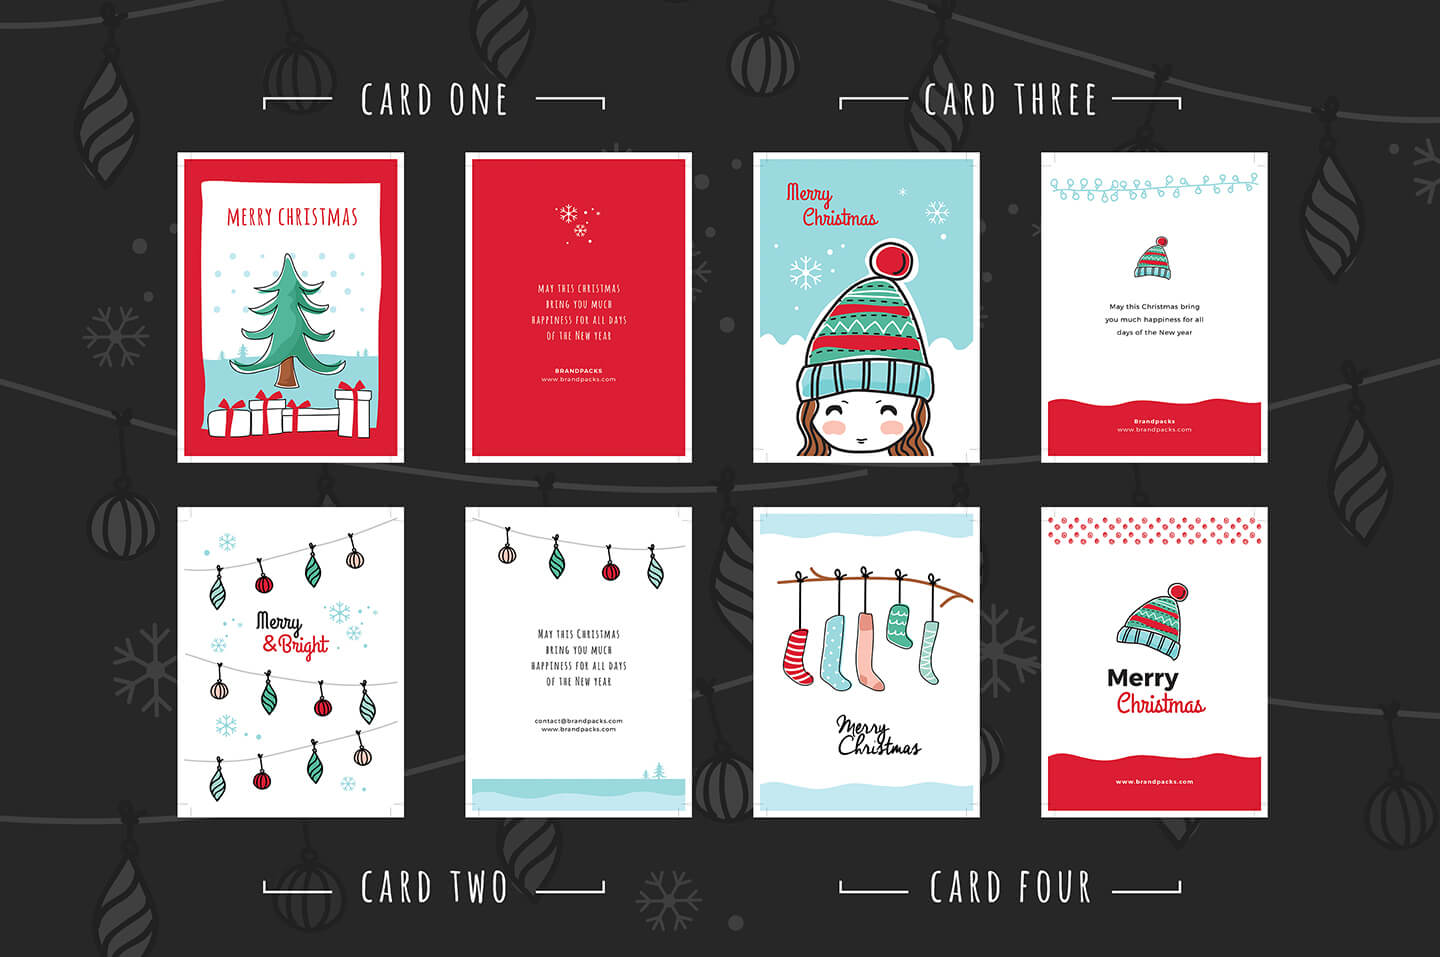 Free Christmas Card Templates For Photoshop & Illustrator For Christmas Photo Card Templates Photoshop